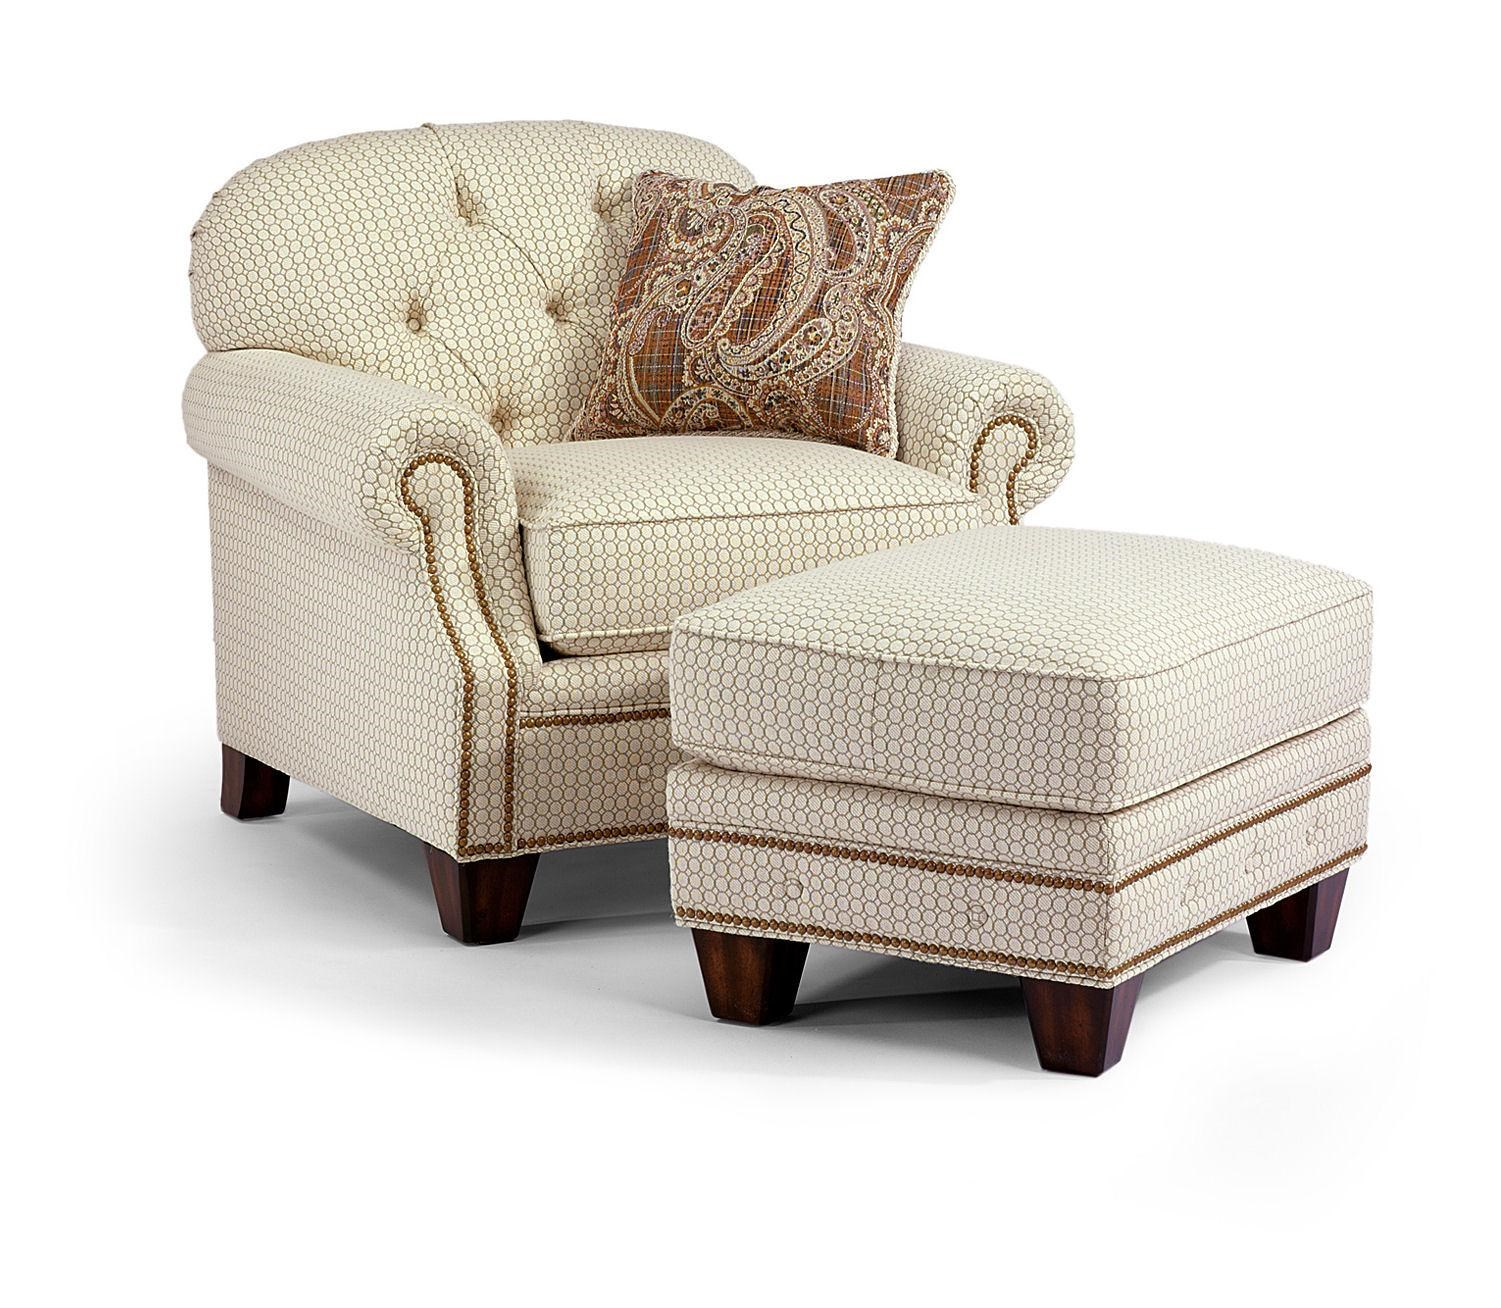 Flexsteel Champion Transitional Button Tufted Chair and  : champion2073867386 10ot b0jpgscalebothampwidth500ampheight500ampfsharpen25ampdown from www.wayside-furniture.com size 500 x 500 jpeg 45kB